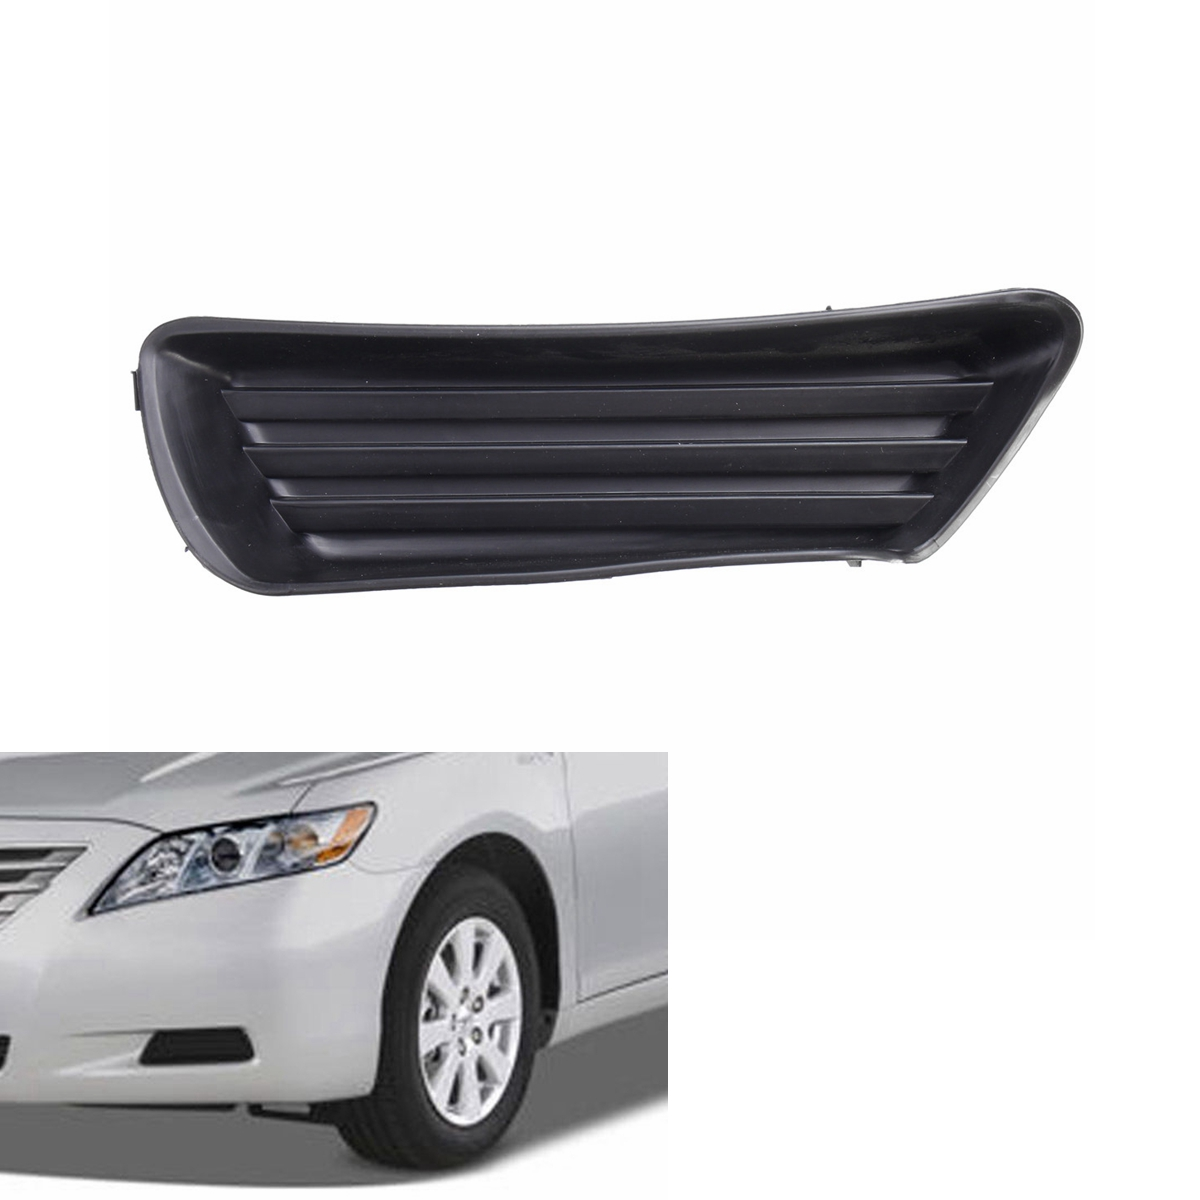 hight resolution of left side front bumper fog light cover for toyota camry 5212706050 to1039124 walmart com